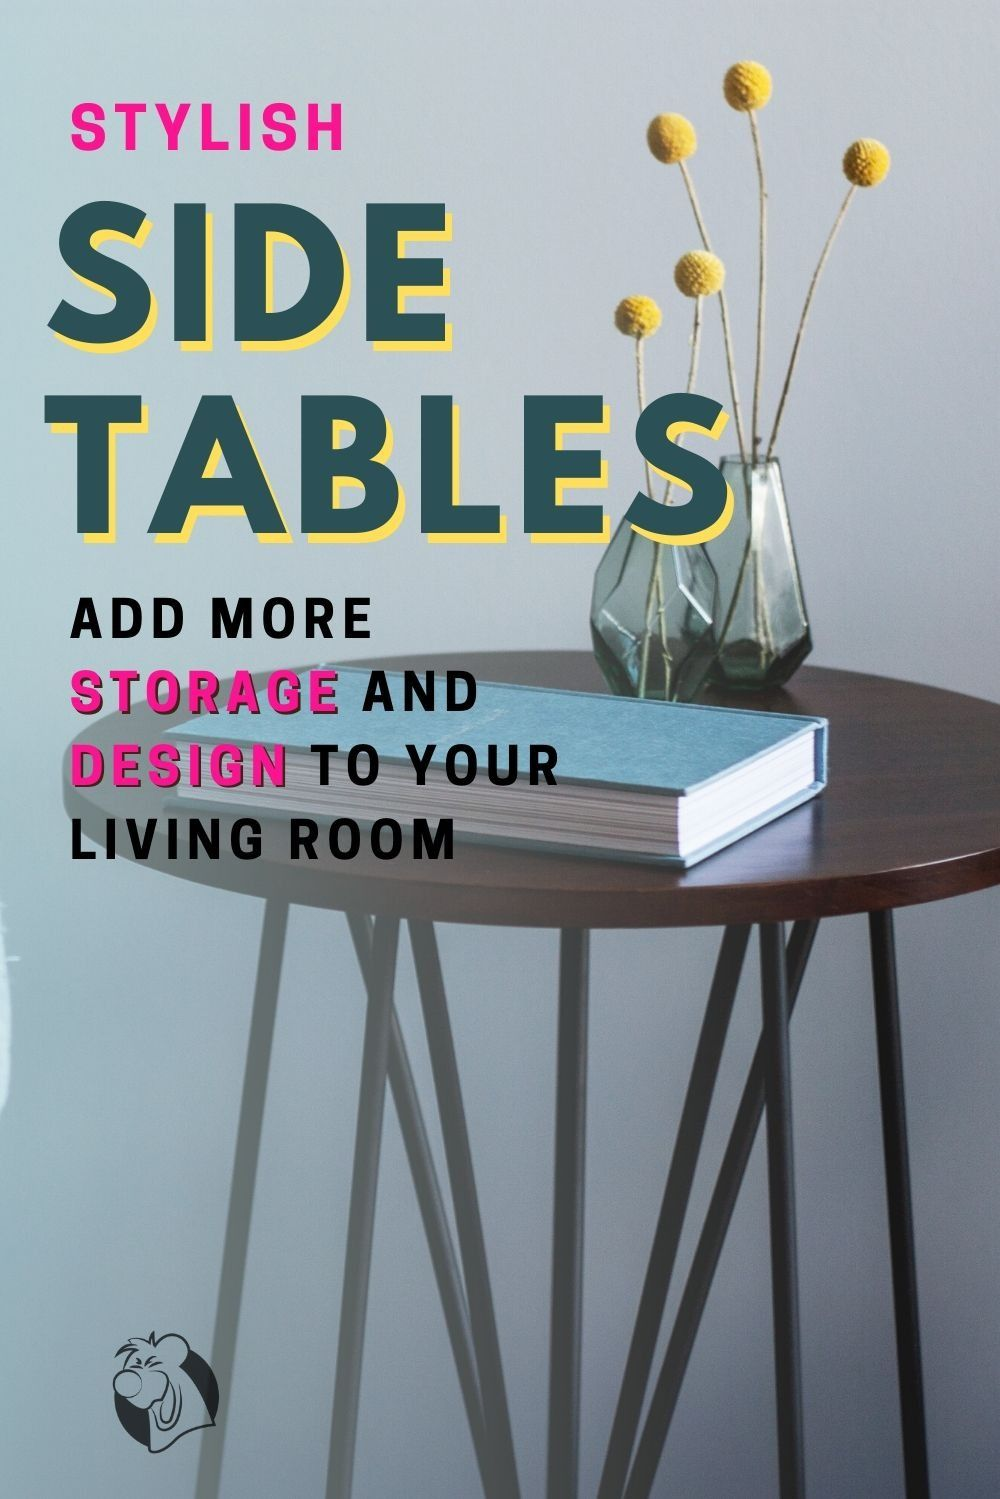 Since furniture shopping can sometimes be quite the hassle, we're here to lend a helping hand to give you the idea of side tables that would add more storage and design to your living room.  #balooworldotca #homedecor #sidetable #sidetable #sidetablestyling #sidetableideas #furnituredesign #furniture #furnitureshopping #livingroomfurniture #bedroomfurniture #homedecorating #homedecorideas #homedecors #homedecorlove #homedecorinspirations #stylishfurniture #styleonmytable #decorateyourhome